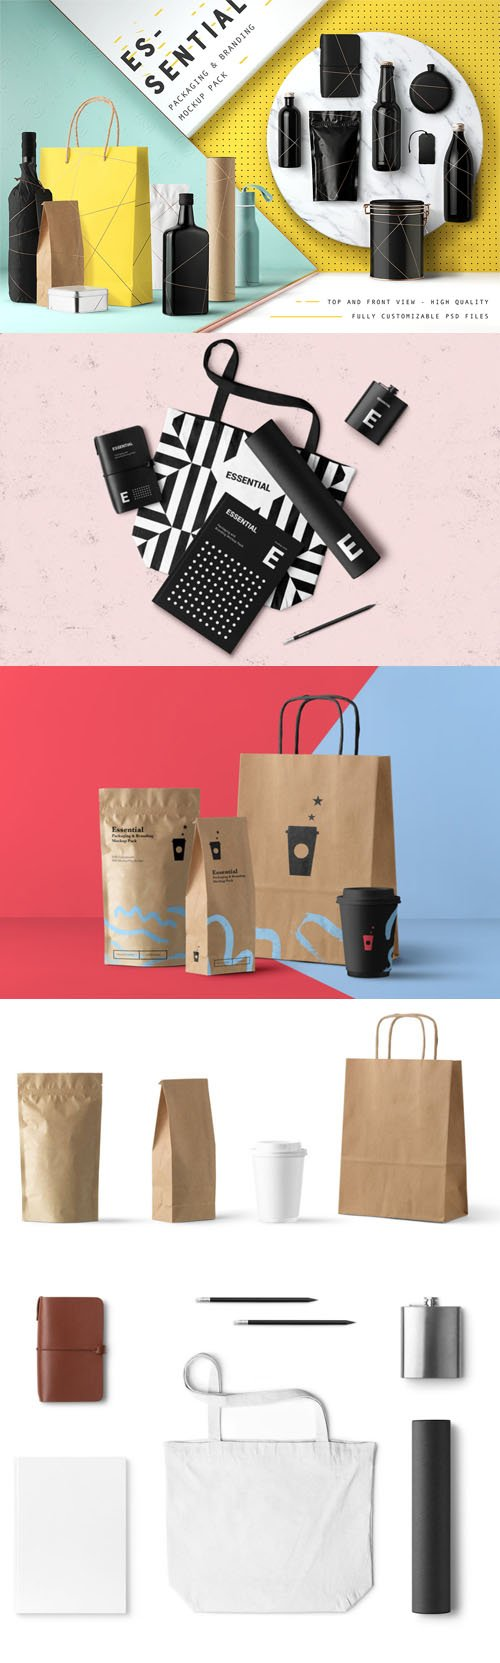 Essential Packaging & Branding PSD Mockup Pack